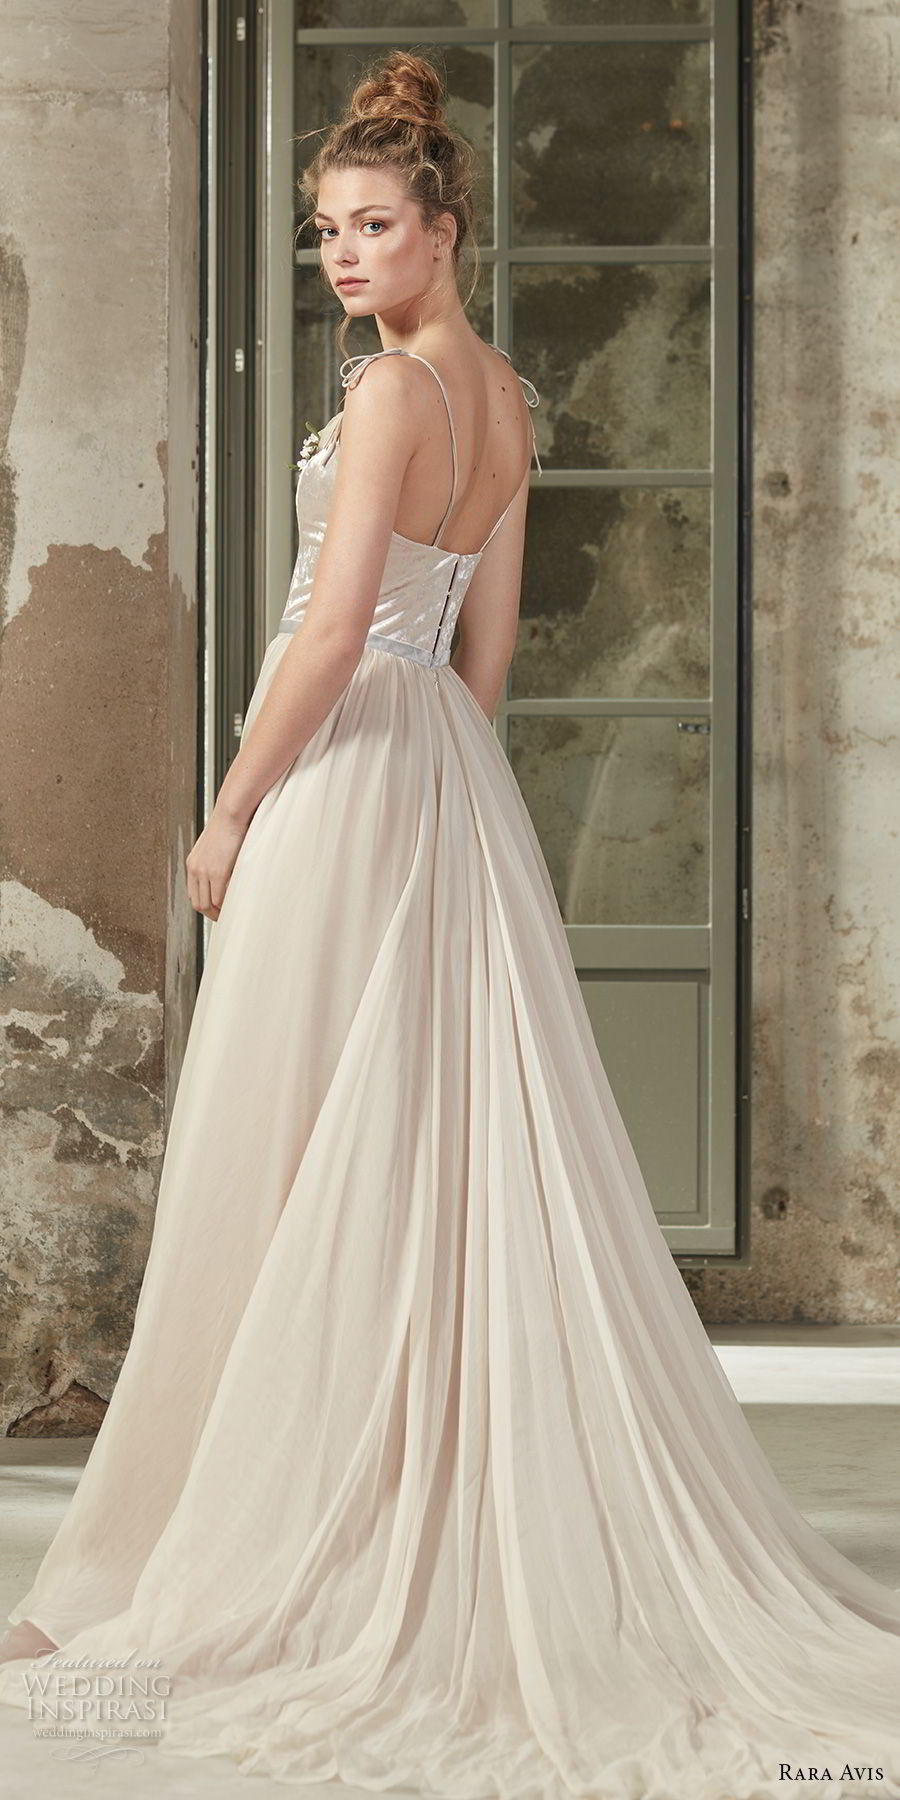 rara avis 2017 bridal sleeveless thin strap sweetheart neckline satin bodice tulle skirt romantic a line wedding dress medium train (20) bv